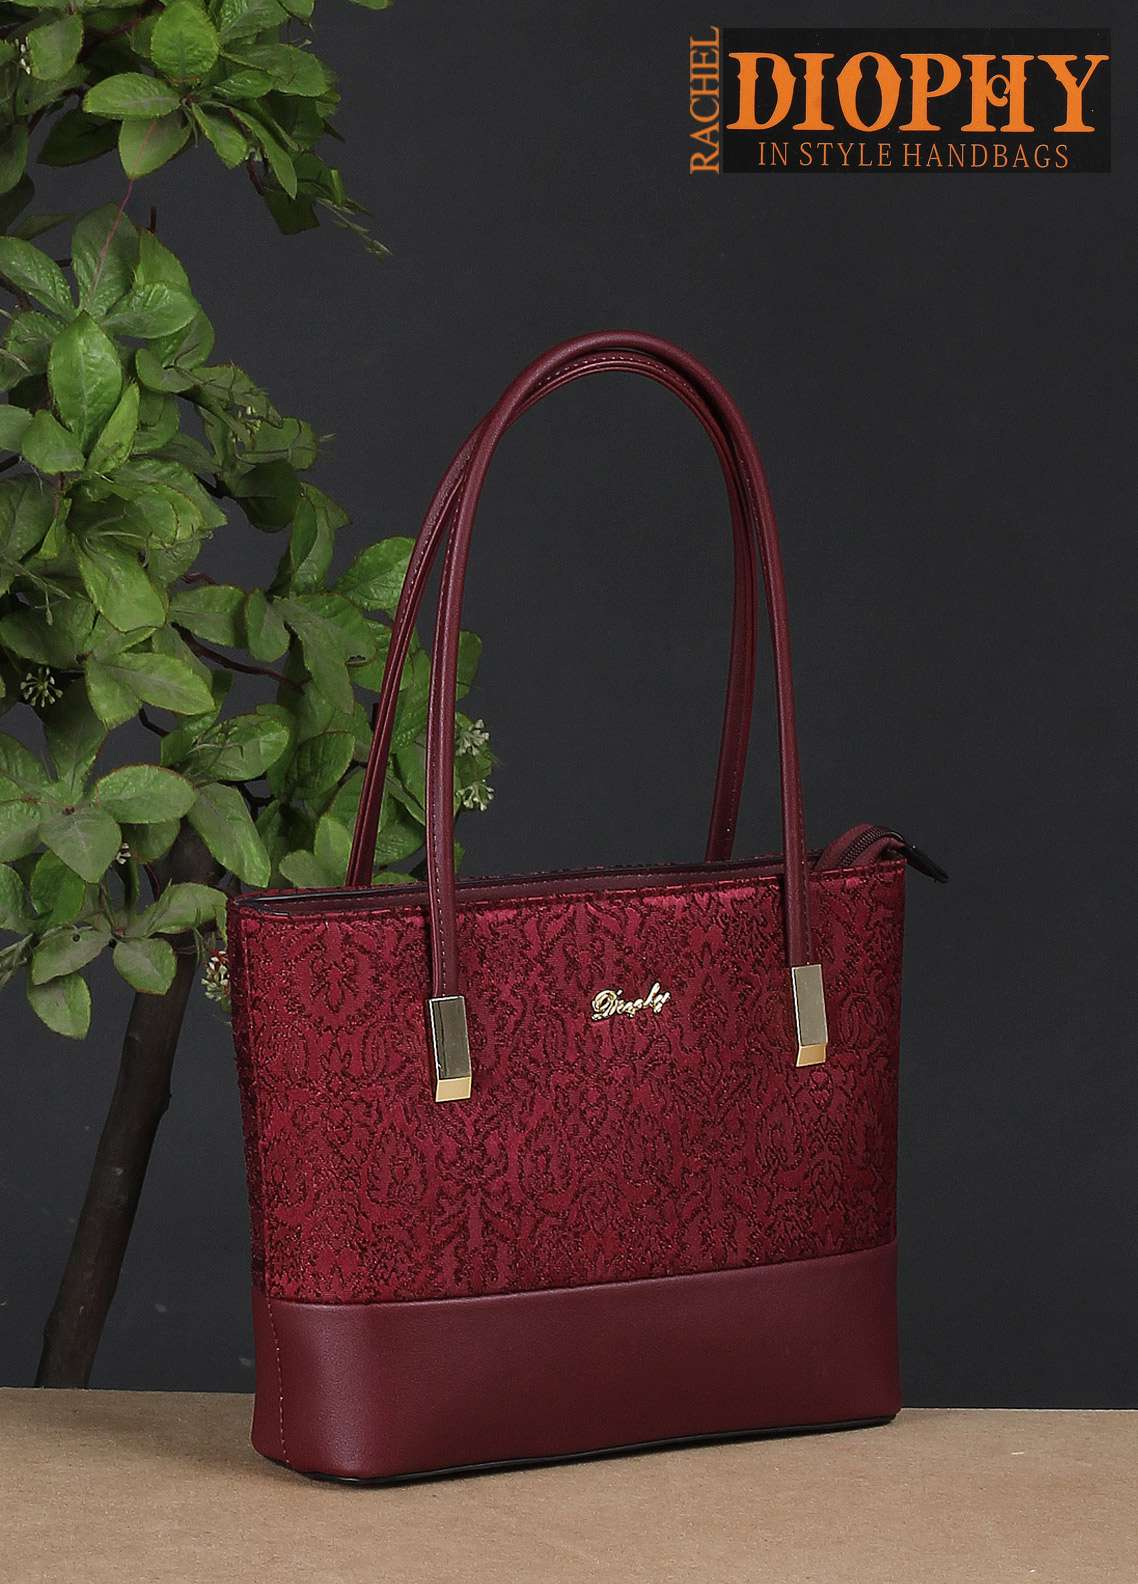 Rachel Diophy PU Leather Tote Handbags for Women - Maroon with Embroidered Textured